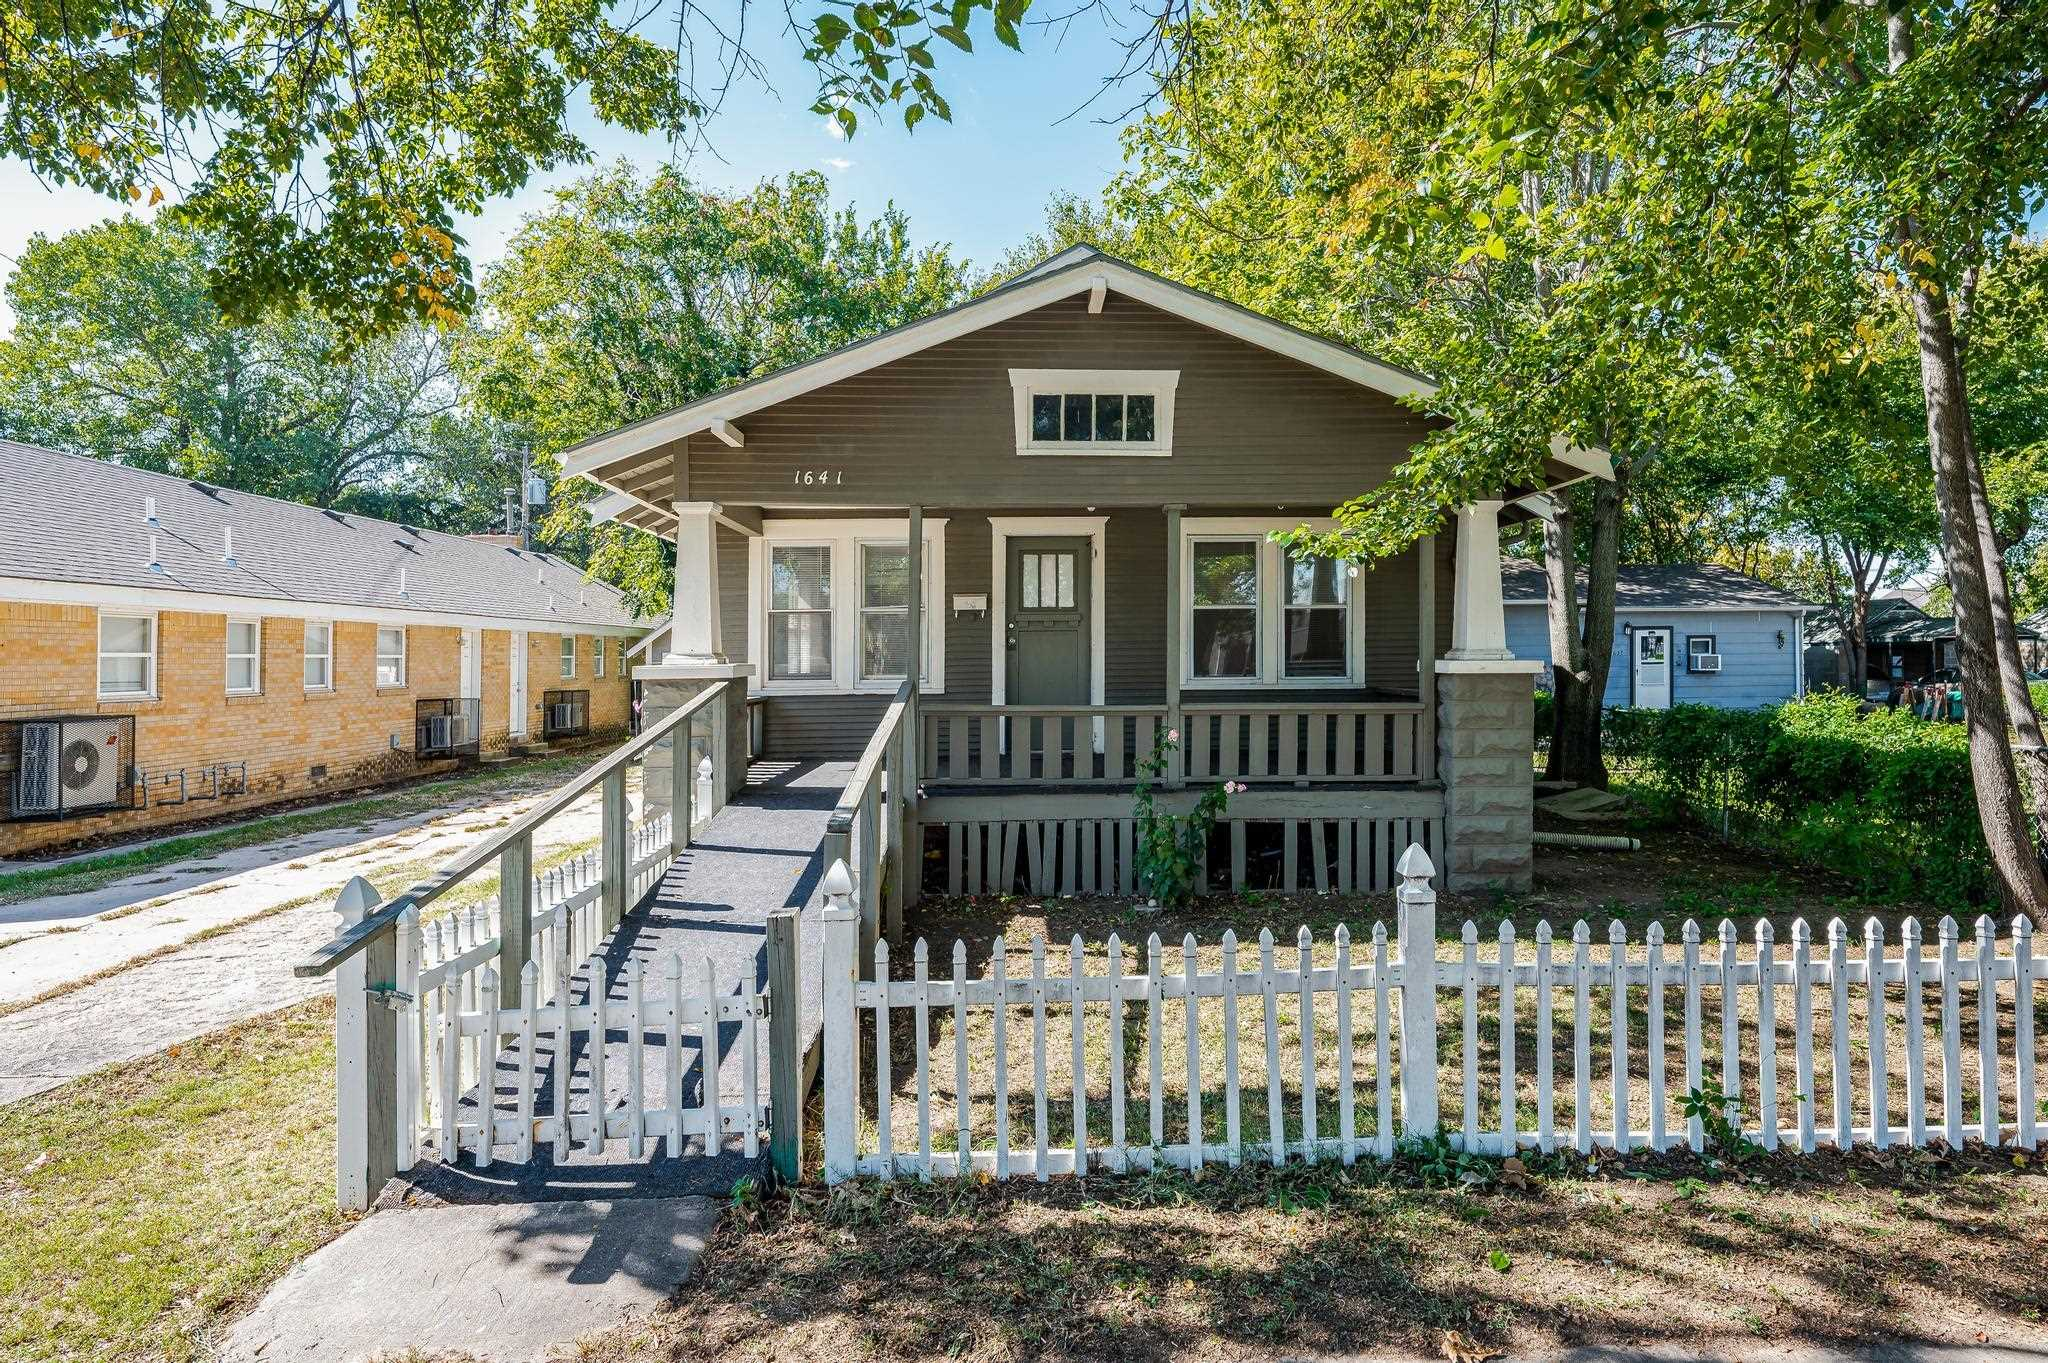 This home is a 2-bedroom, 1-bathroom home located in heart of Wichita. The exterior features a detac